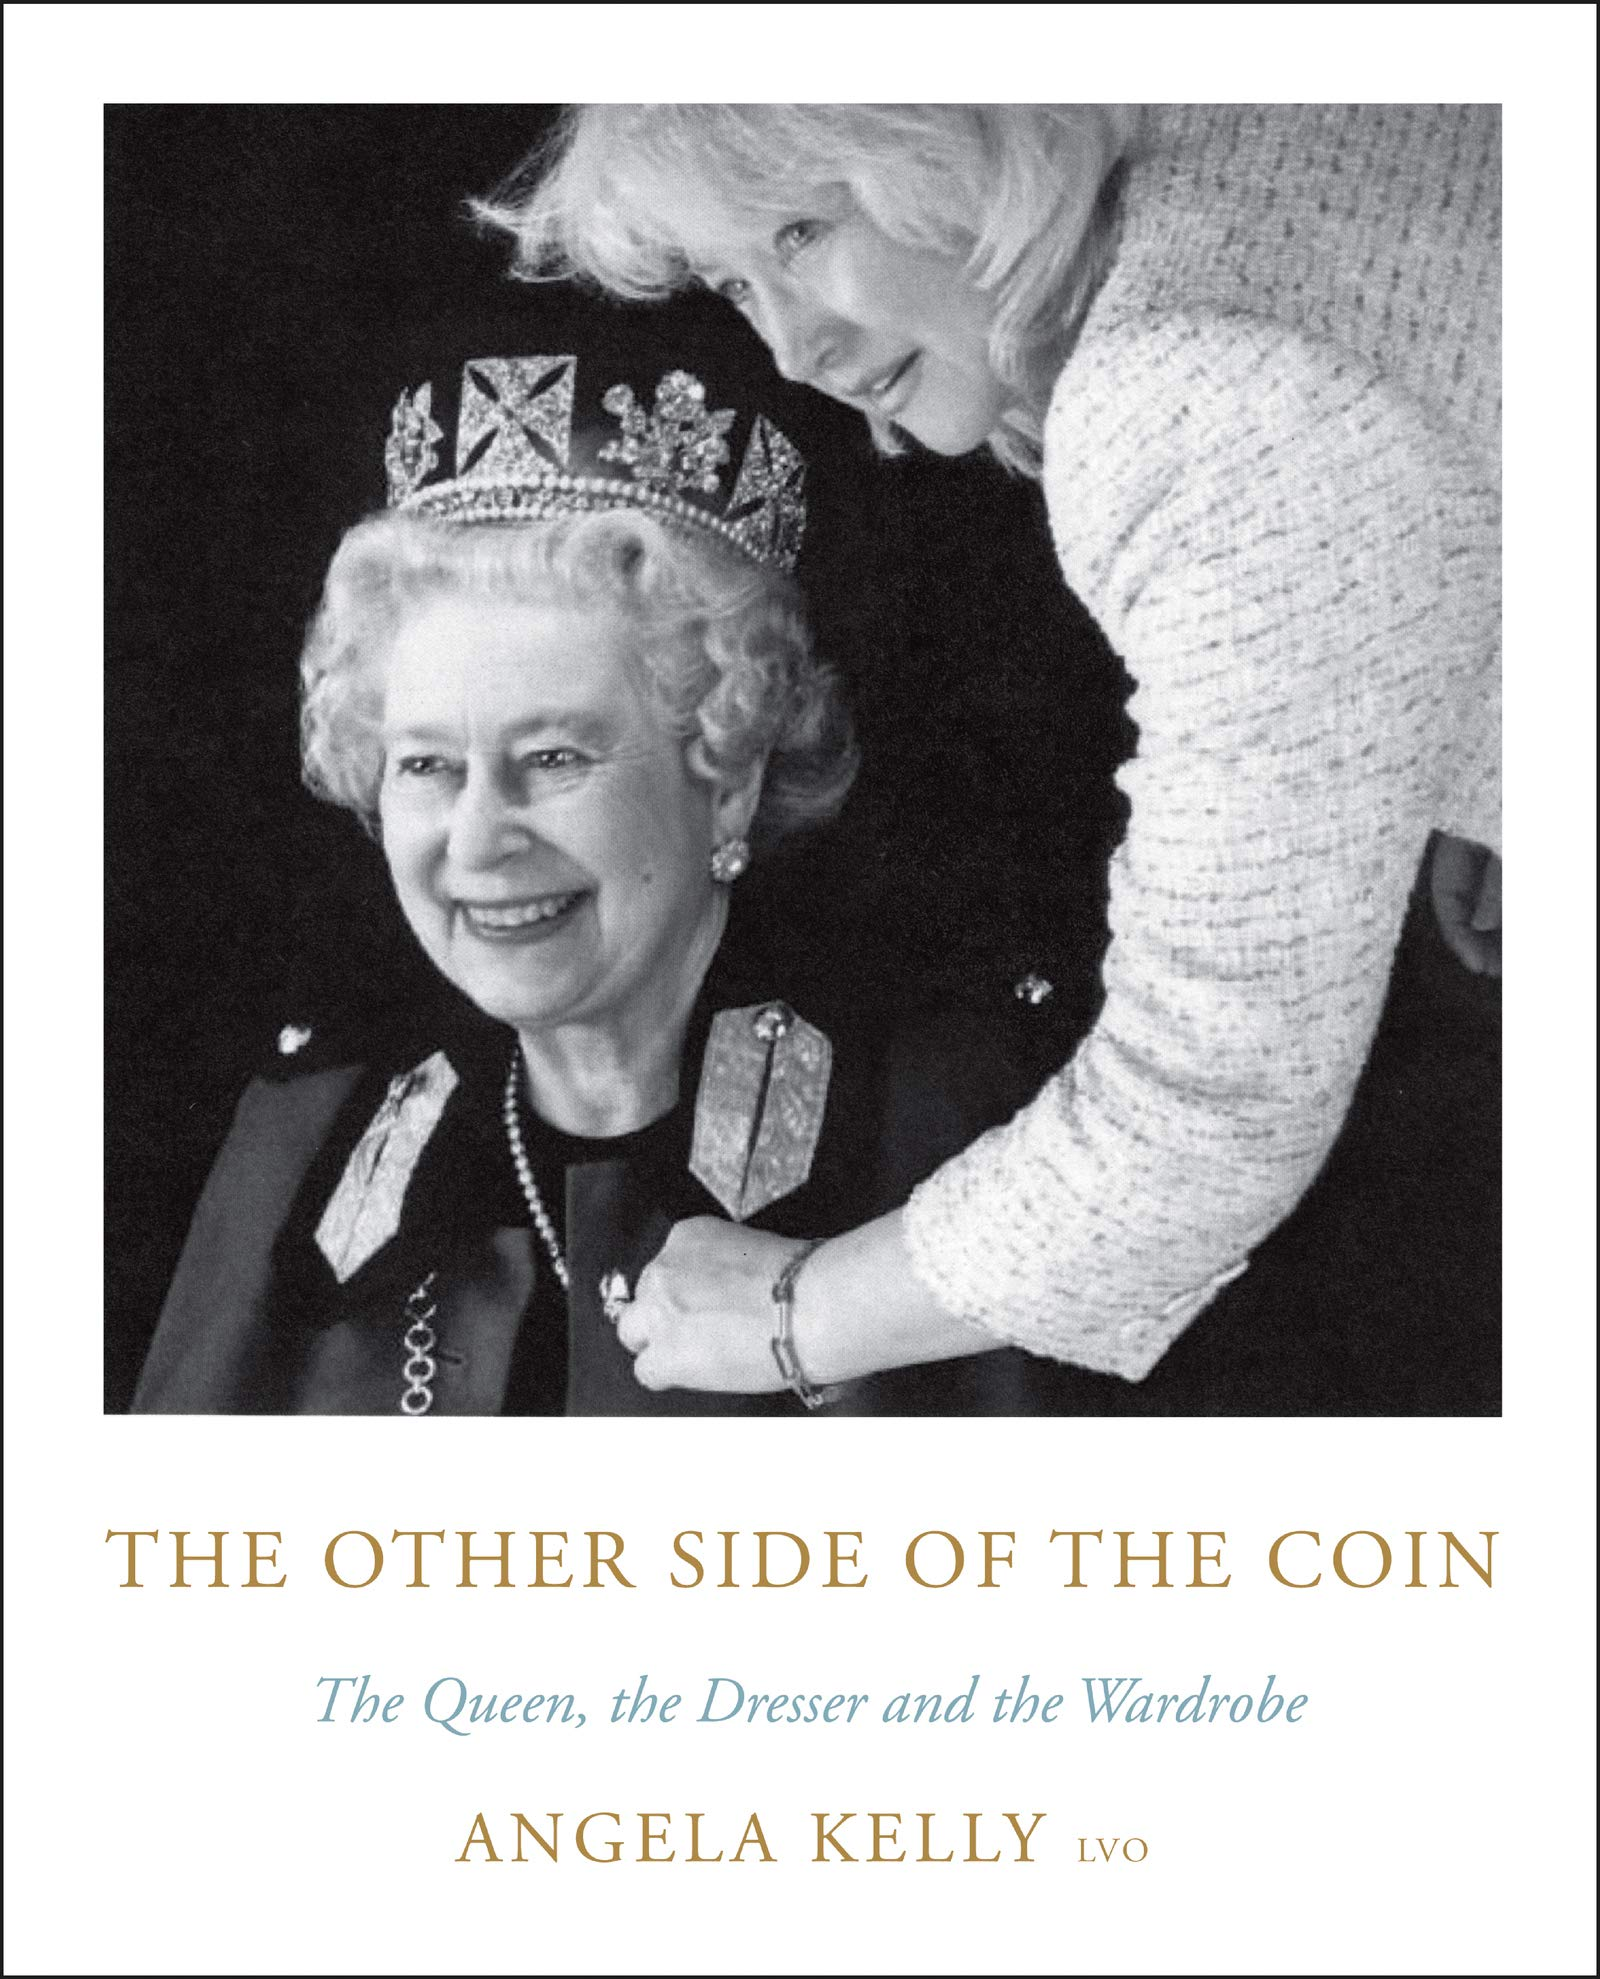 The Other Side of the Coin: The Queen, the